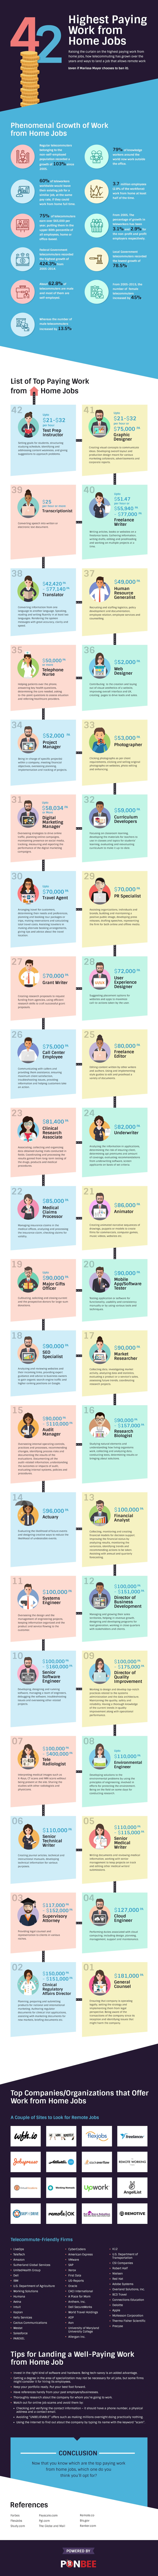 Top 42 Highest Paying Work From Home Jobs - Infographic